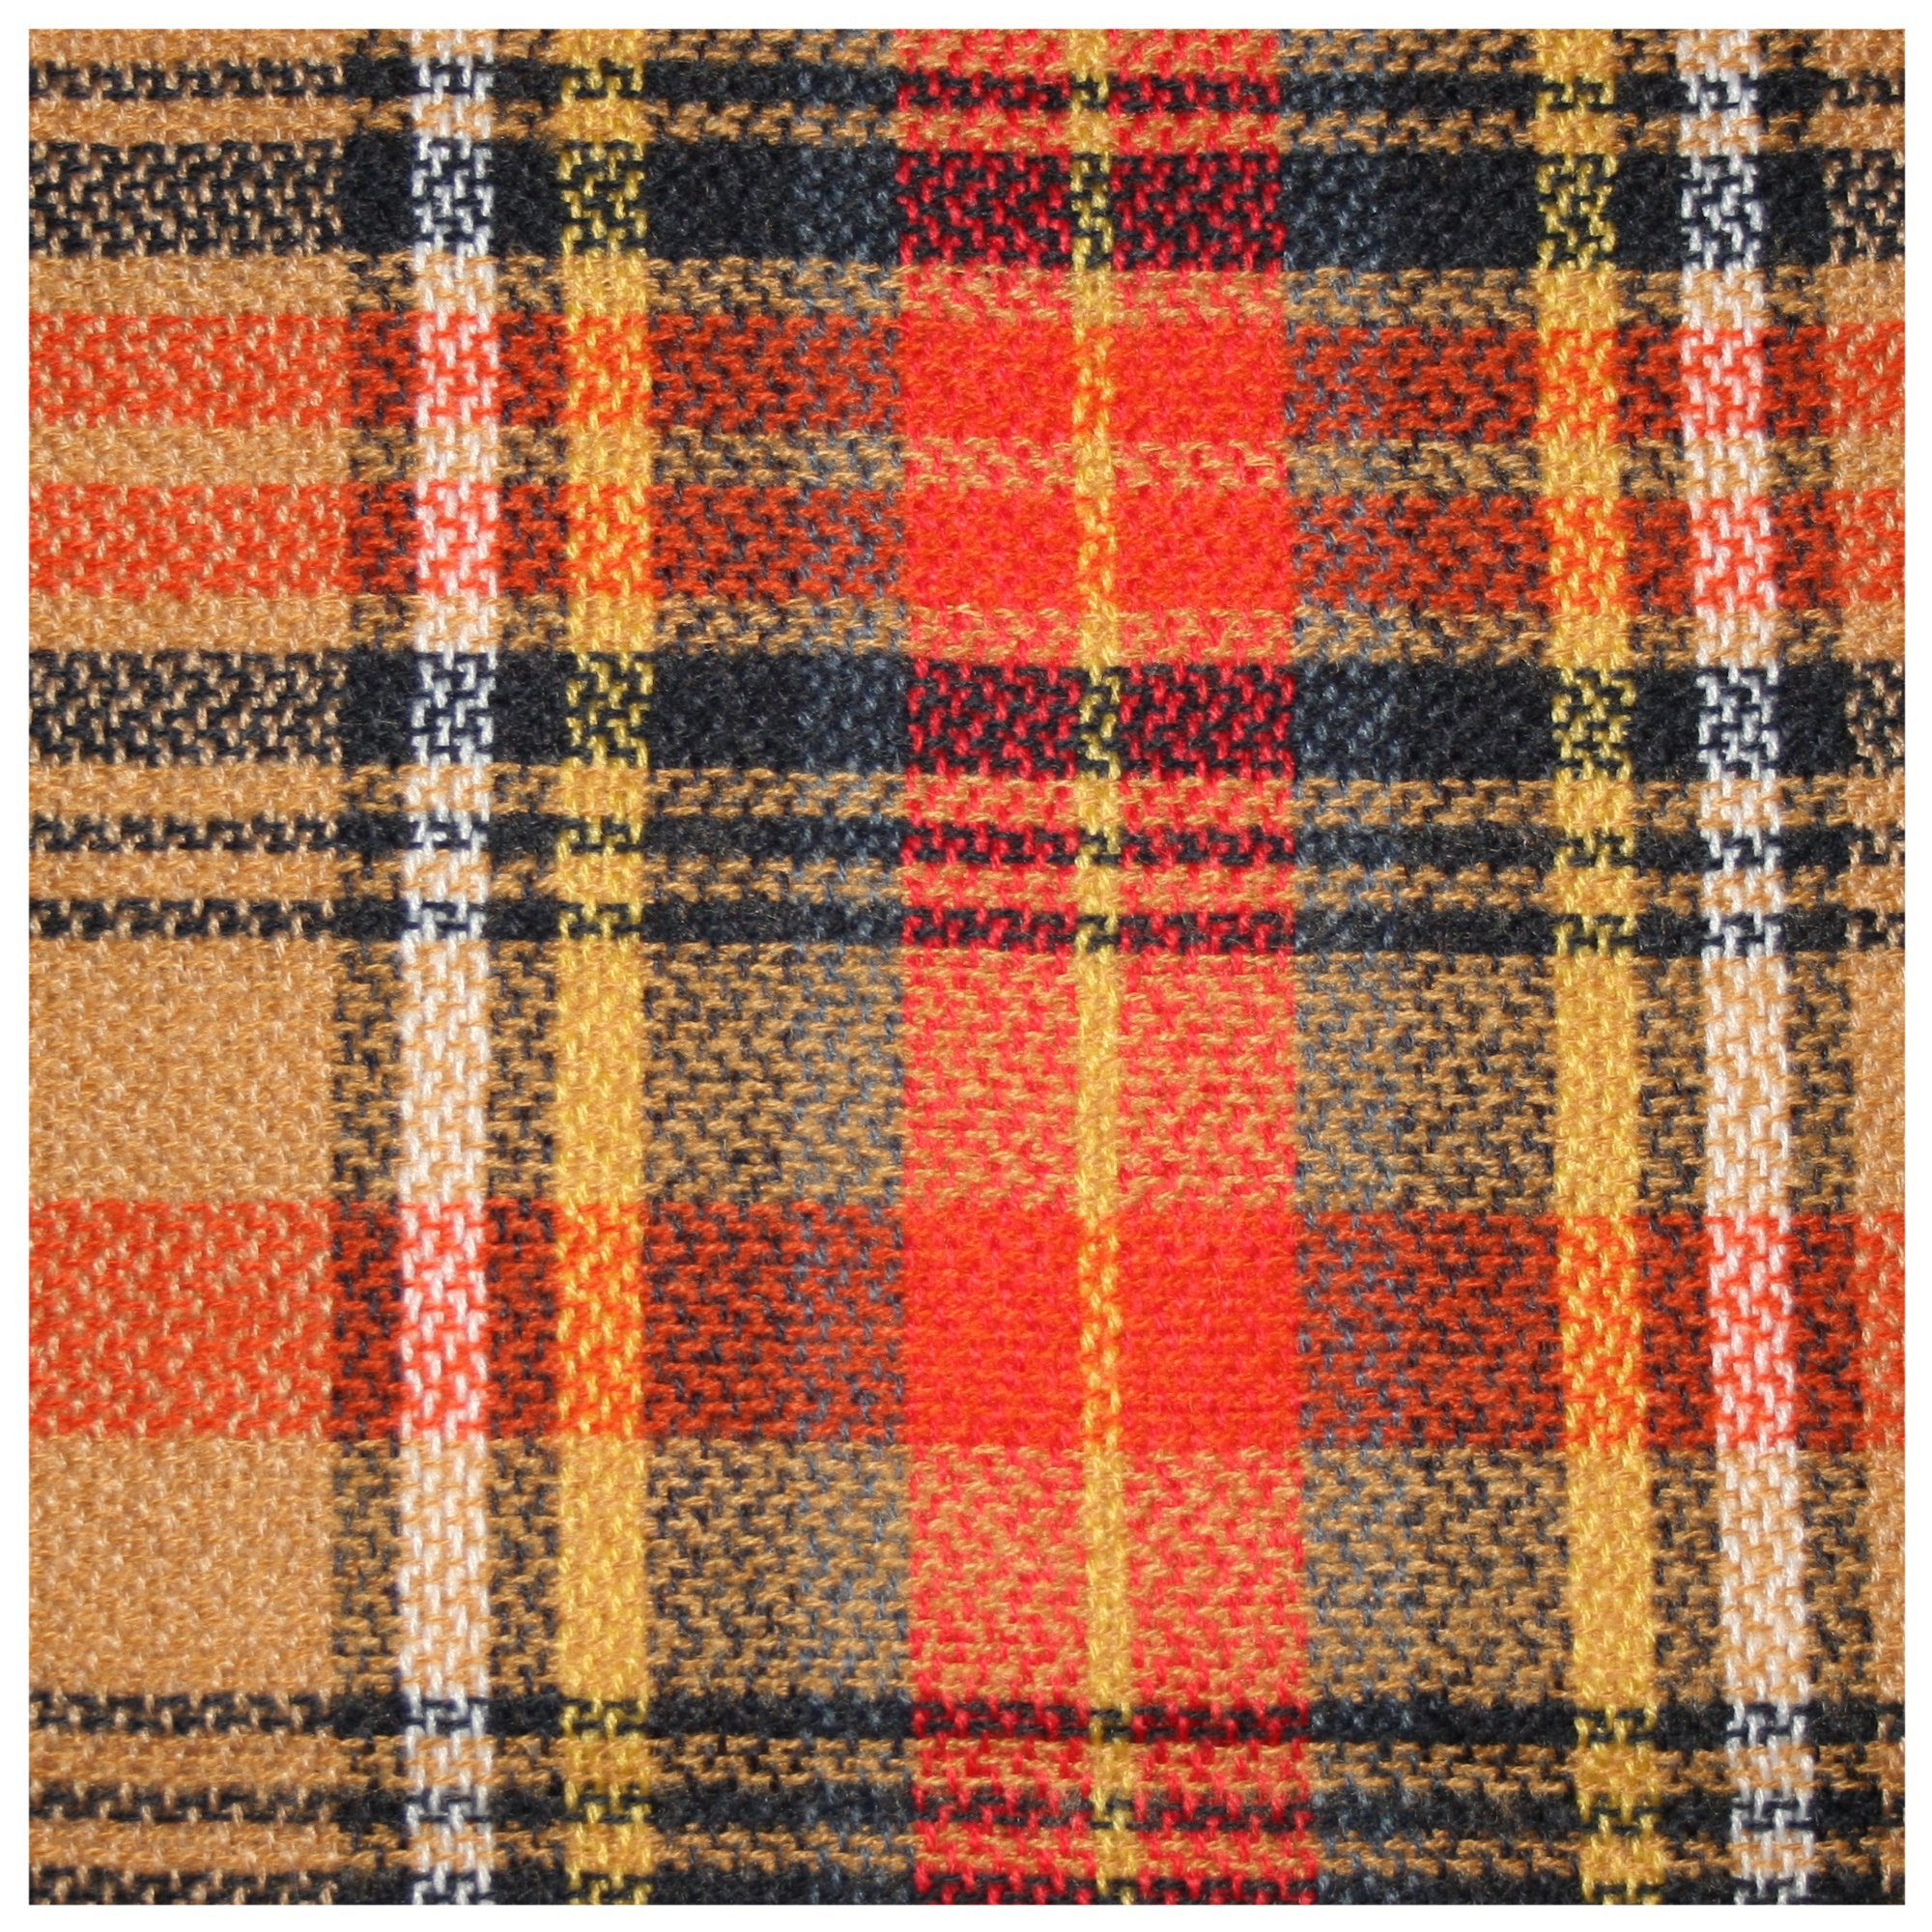 Epic Brand Infinity Scarf Collection for Men and Women | Comfortable Plaid Tartan Cashmere Blanket Circle Winter Scarves (Plaid Orange/Navy Blue) by Epic Brand (Image #2)